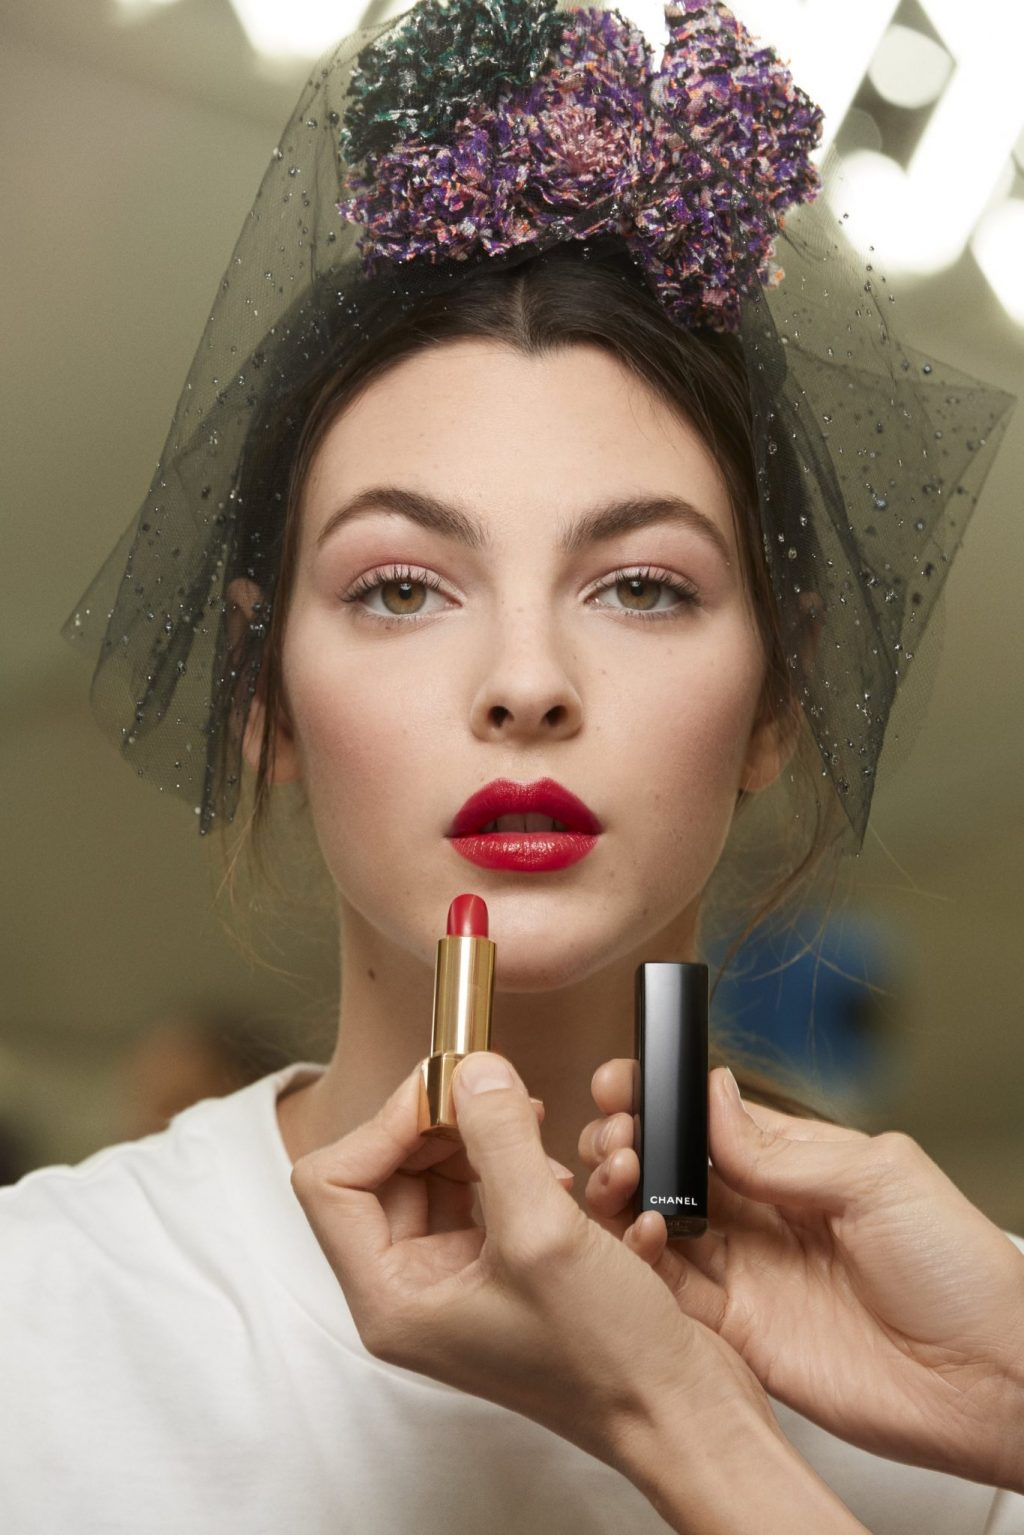 son Rouge Allure kinh điển của Chanel 2